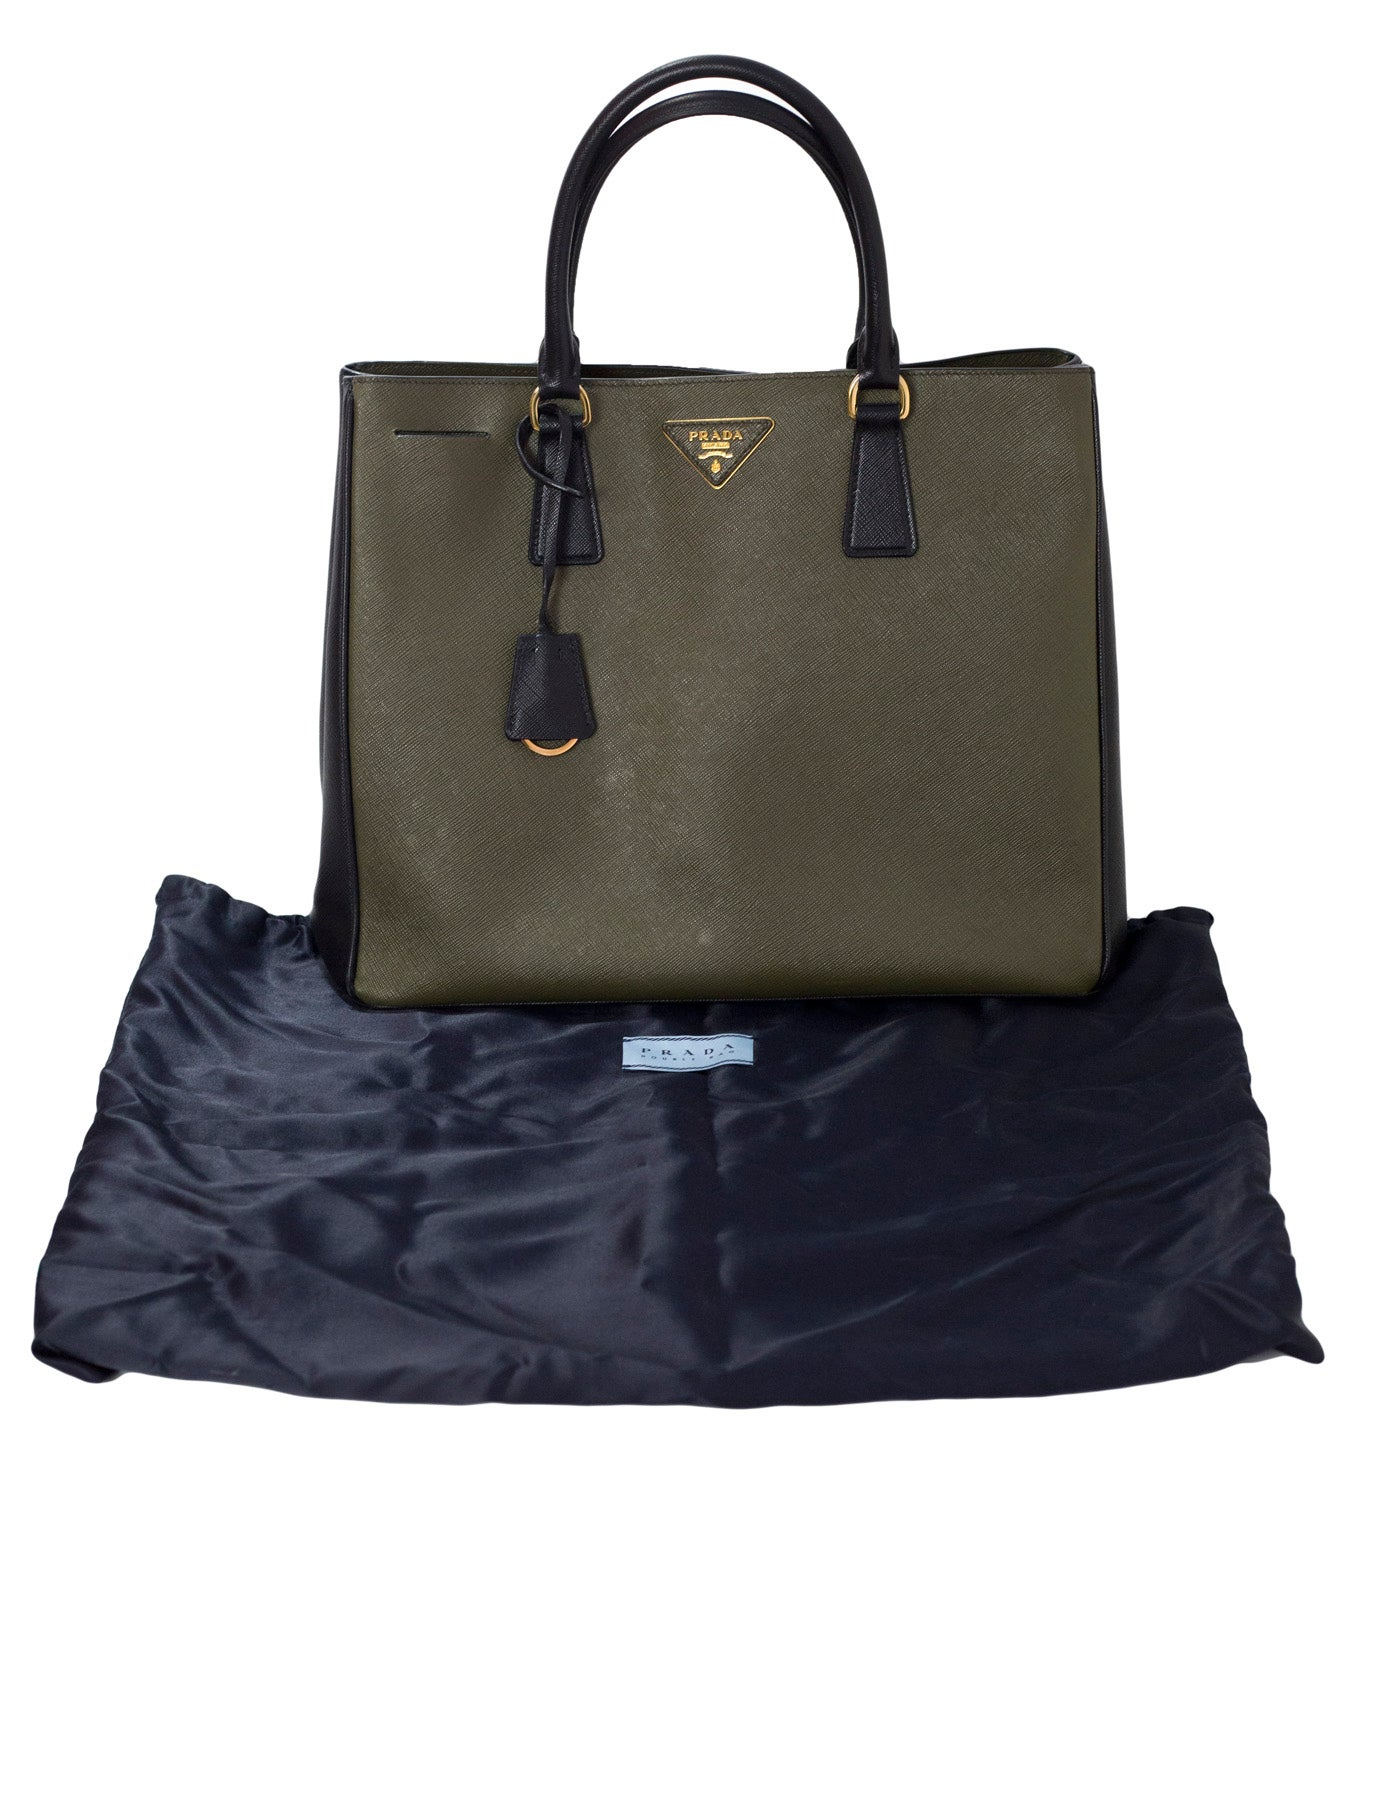 846deba560 ... norway prada black and green militaire saffiano leather tote bag for  sale at 1stdibs 62e28 5286d